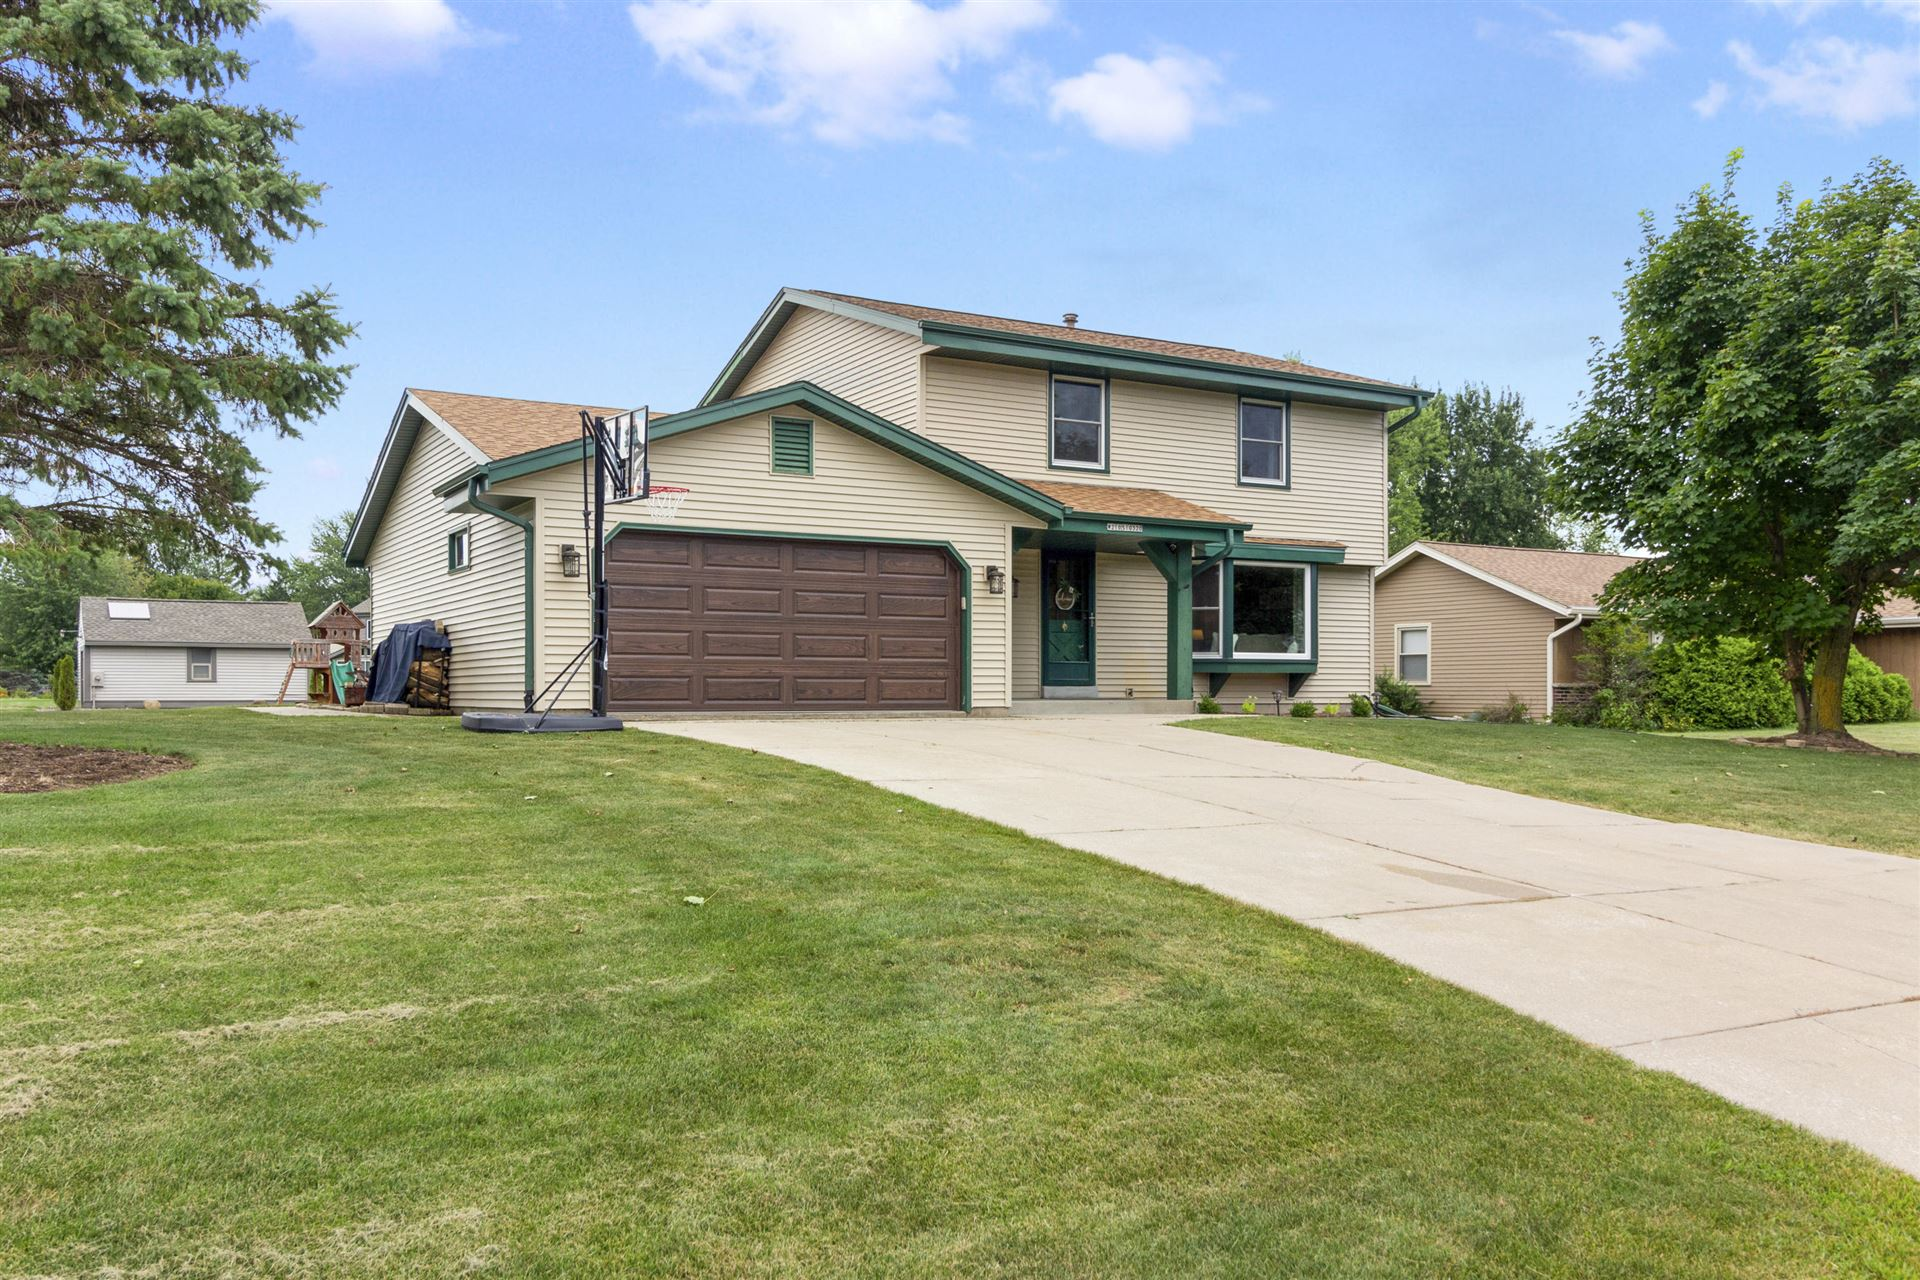 W210S10320 Janis Ln, Muskego, WI 53150 - #: 1703612